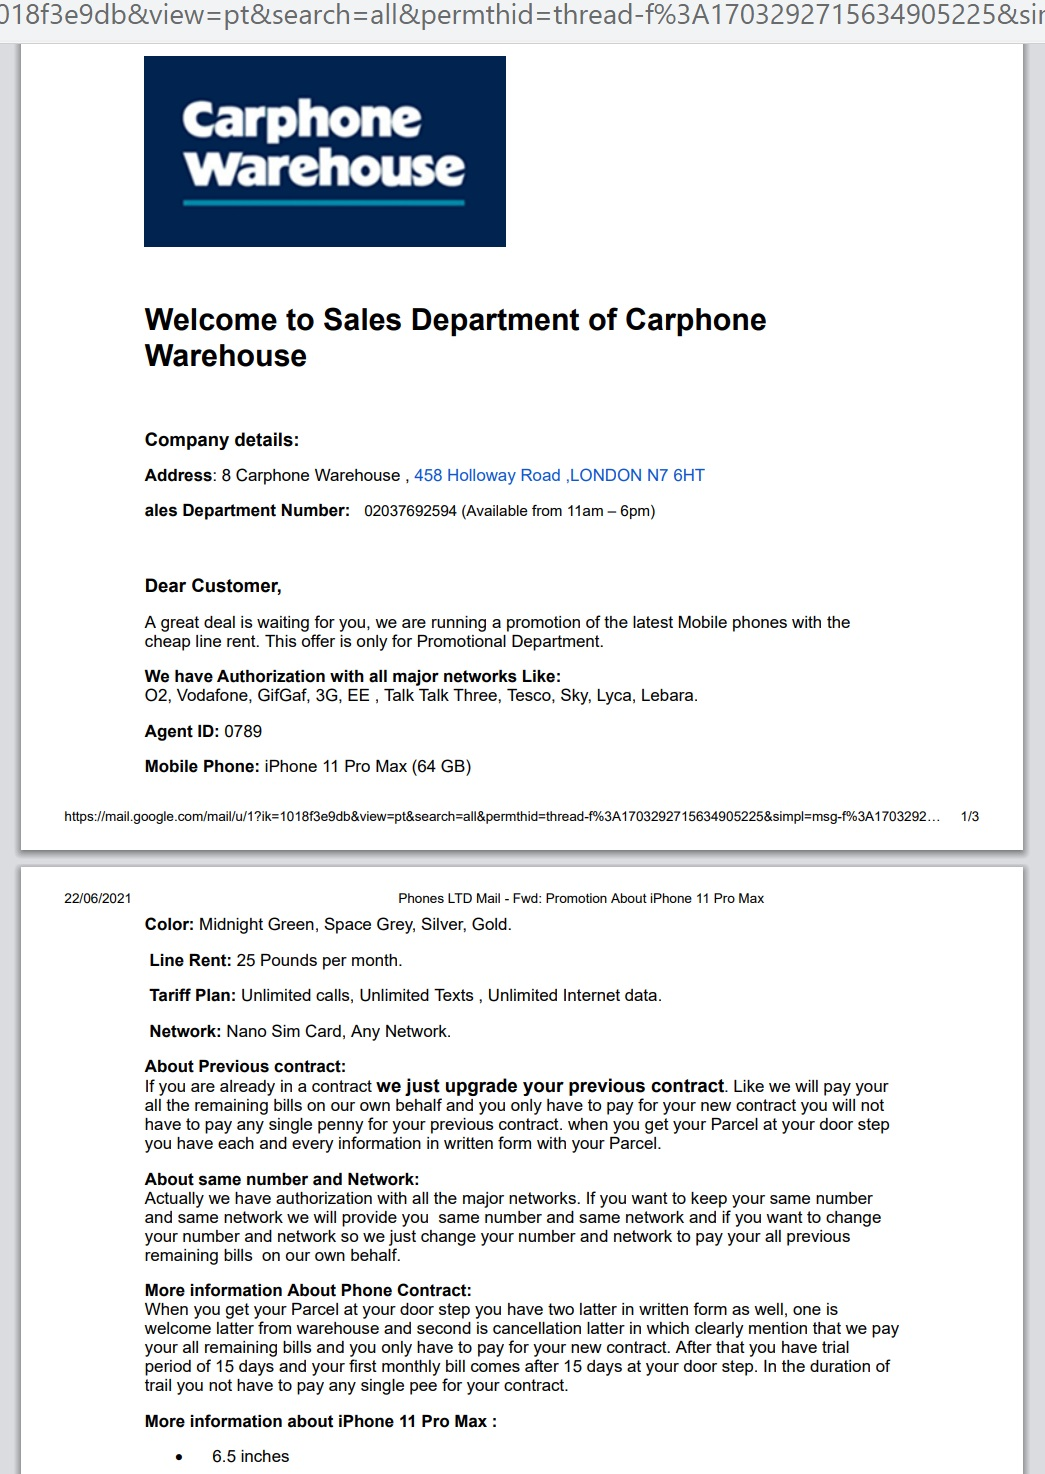 Scam email from Carphone Warehouse fraudsters